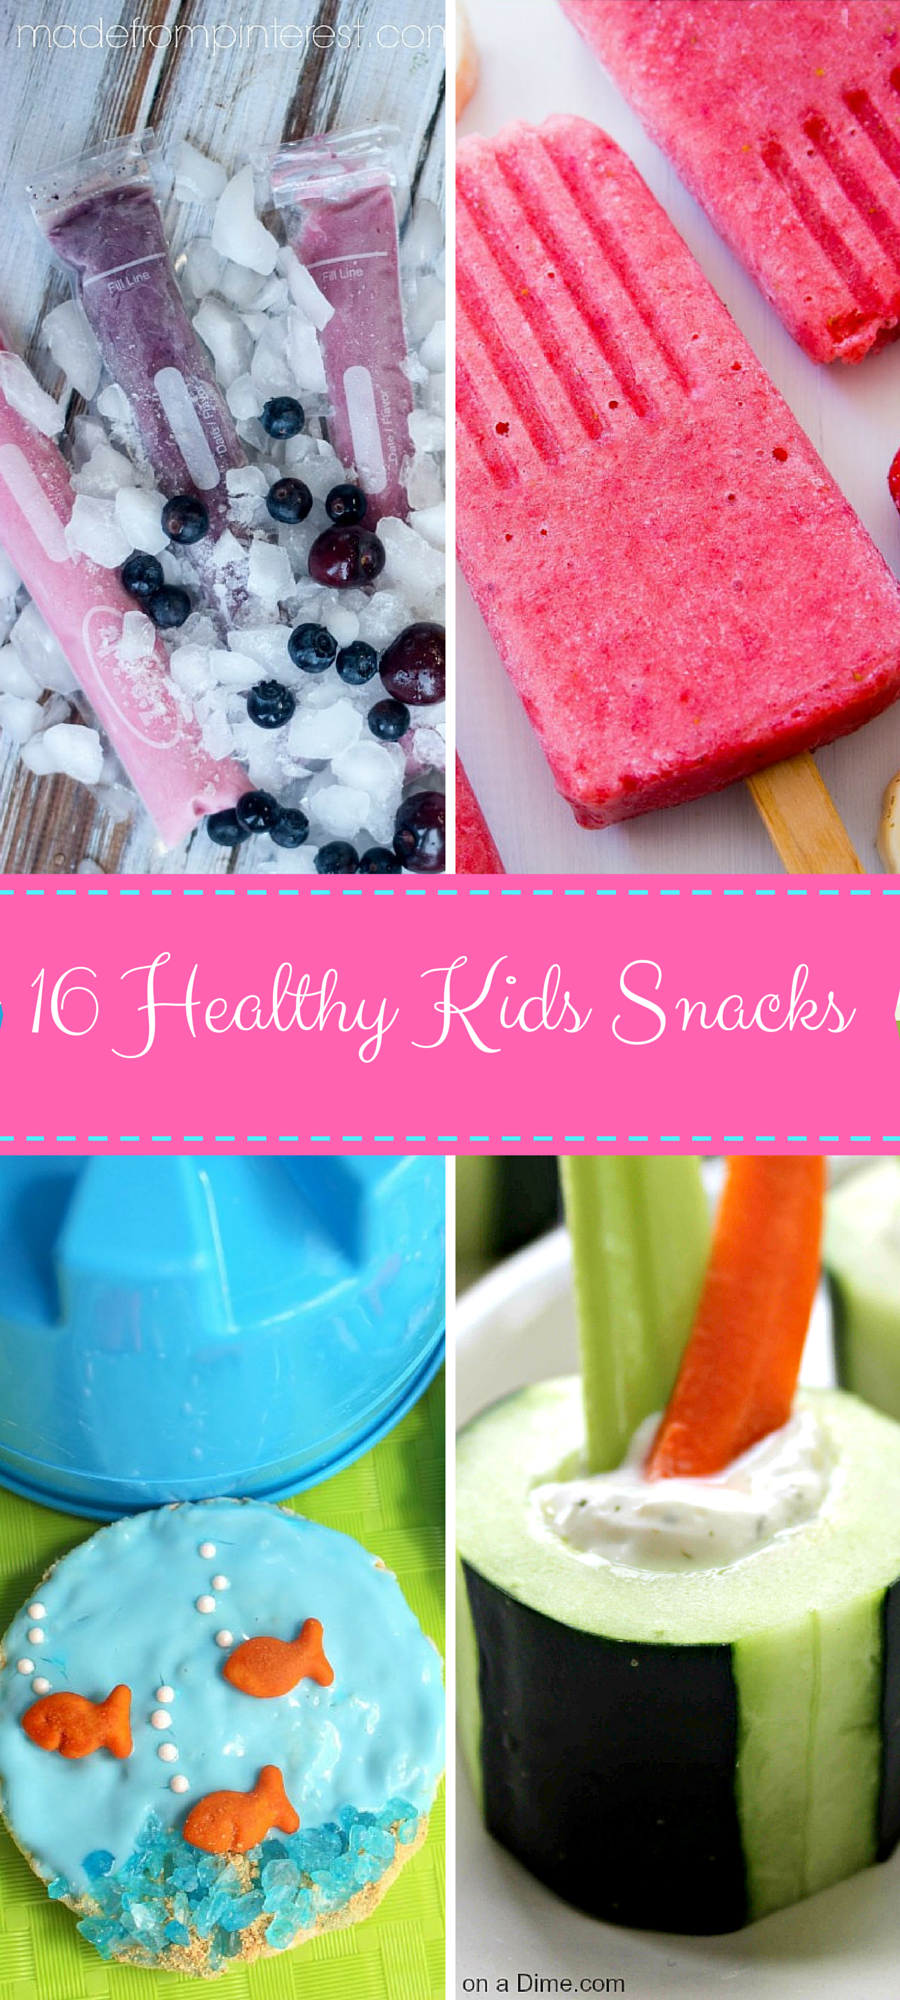 Here are 16 healthy kids snacks to get you through the rest of the summer!